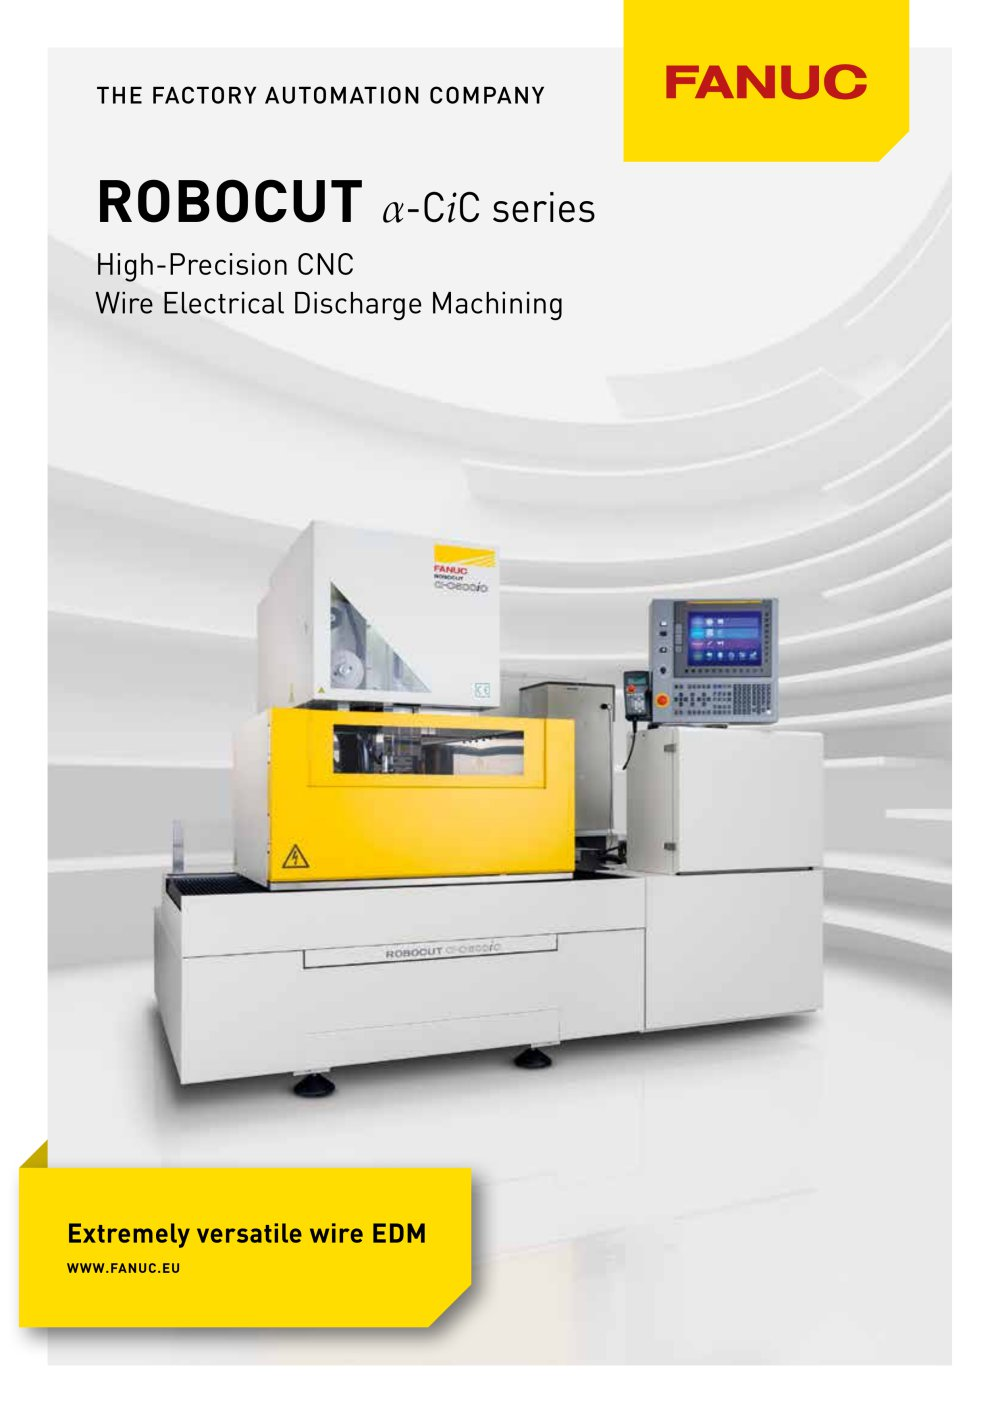 Robocut fanuc robocut - fanuc europe corporation - pdf catalogue